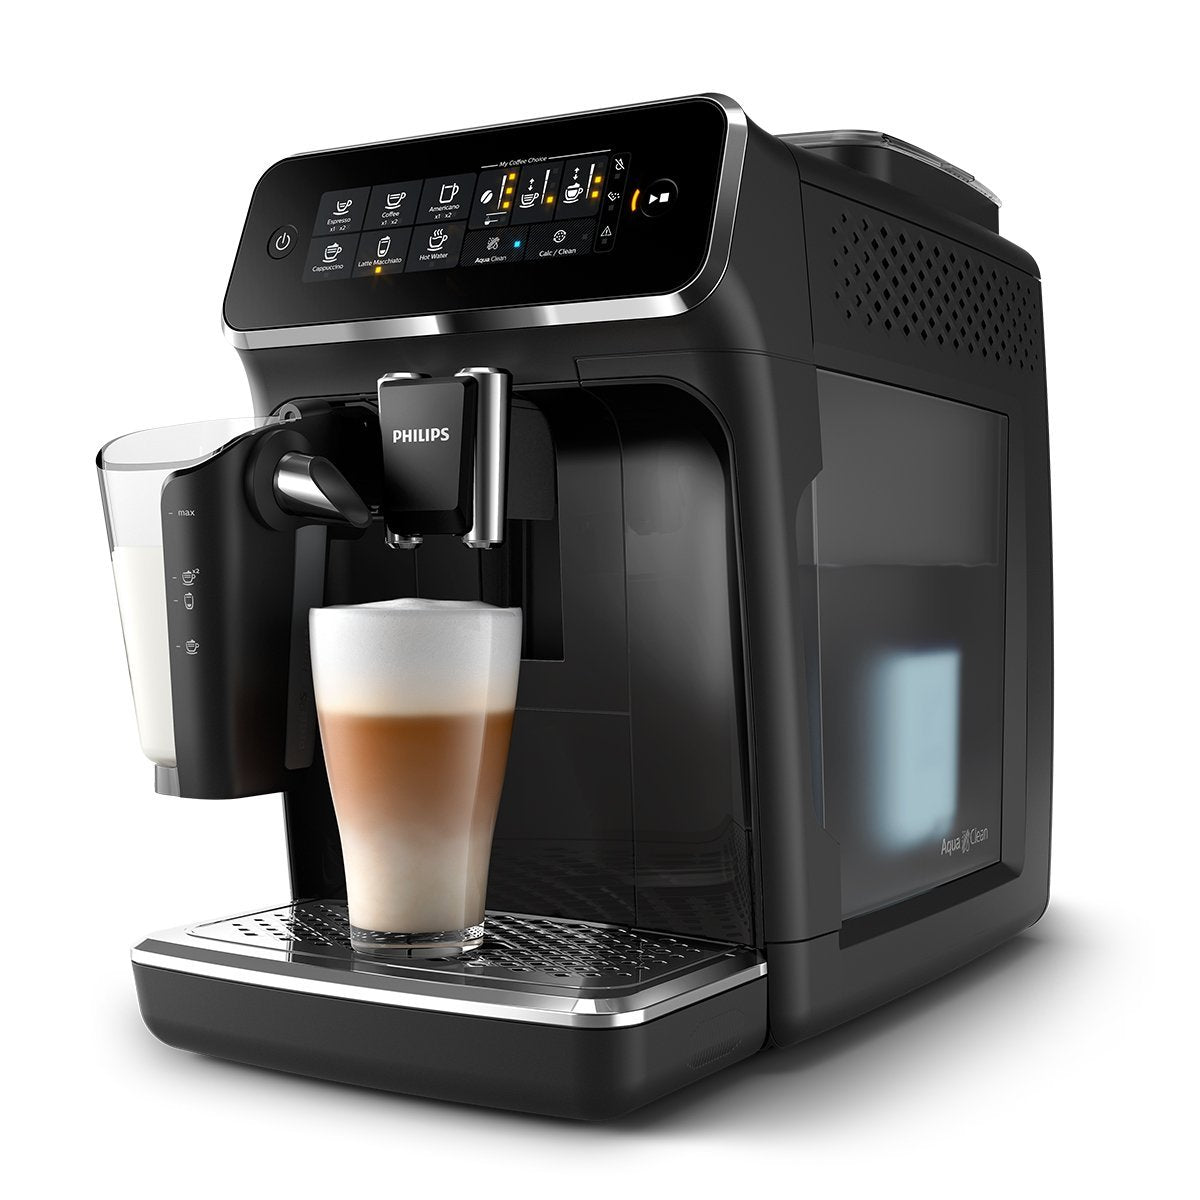 Philips - Serie 3200 LatteGo EP3241/54